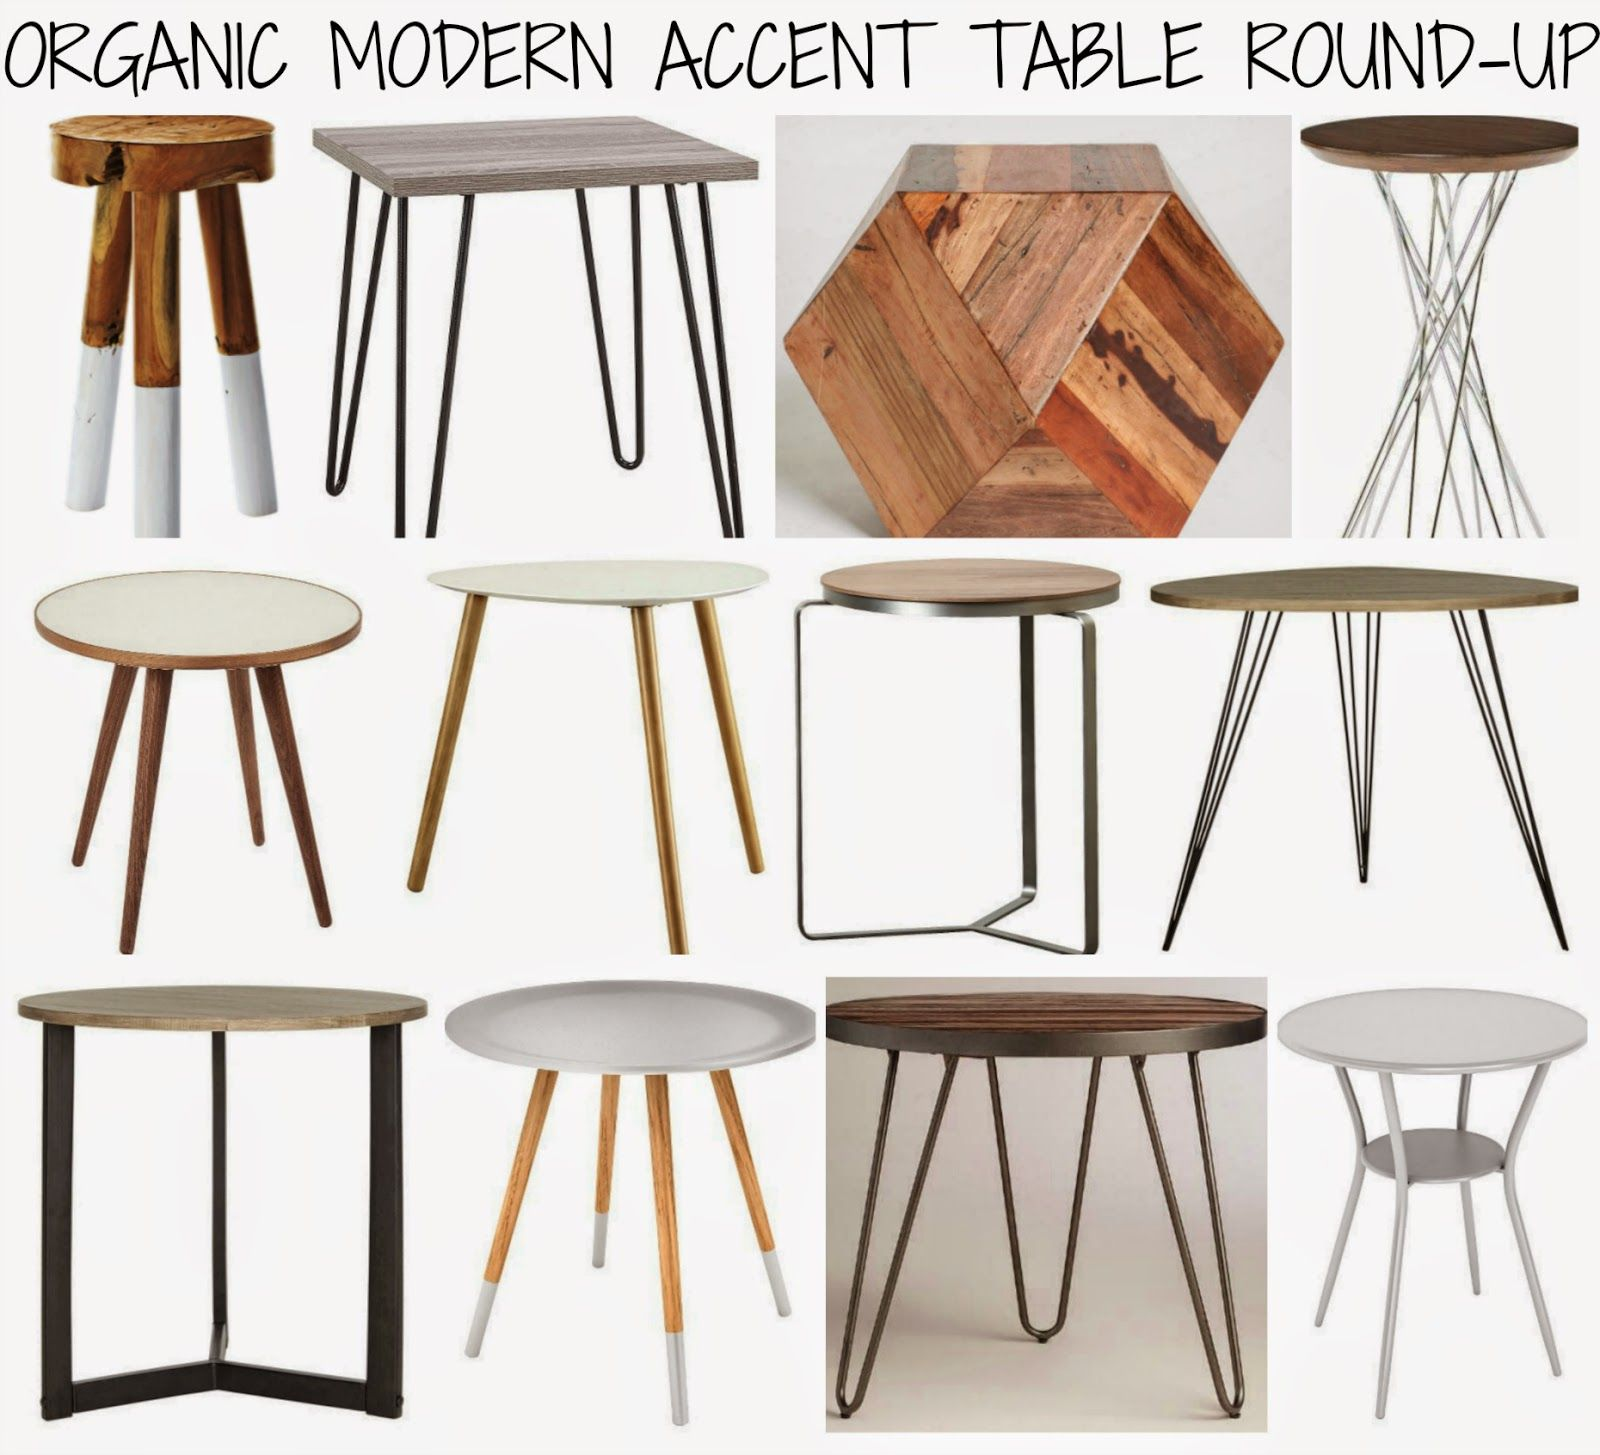 Superb AFFORDABLE ACCENT TABLE ROUND UP: MID CENTURY MEETS ORGANIC MODERN